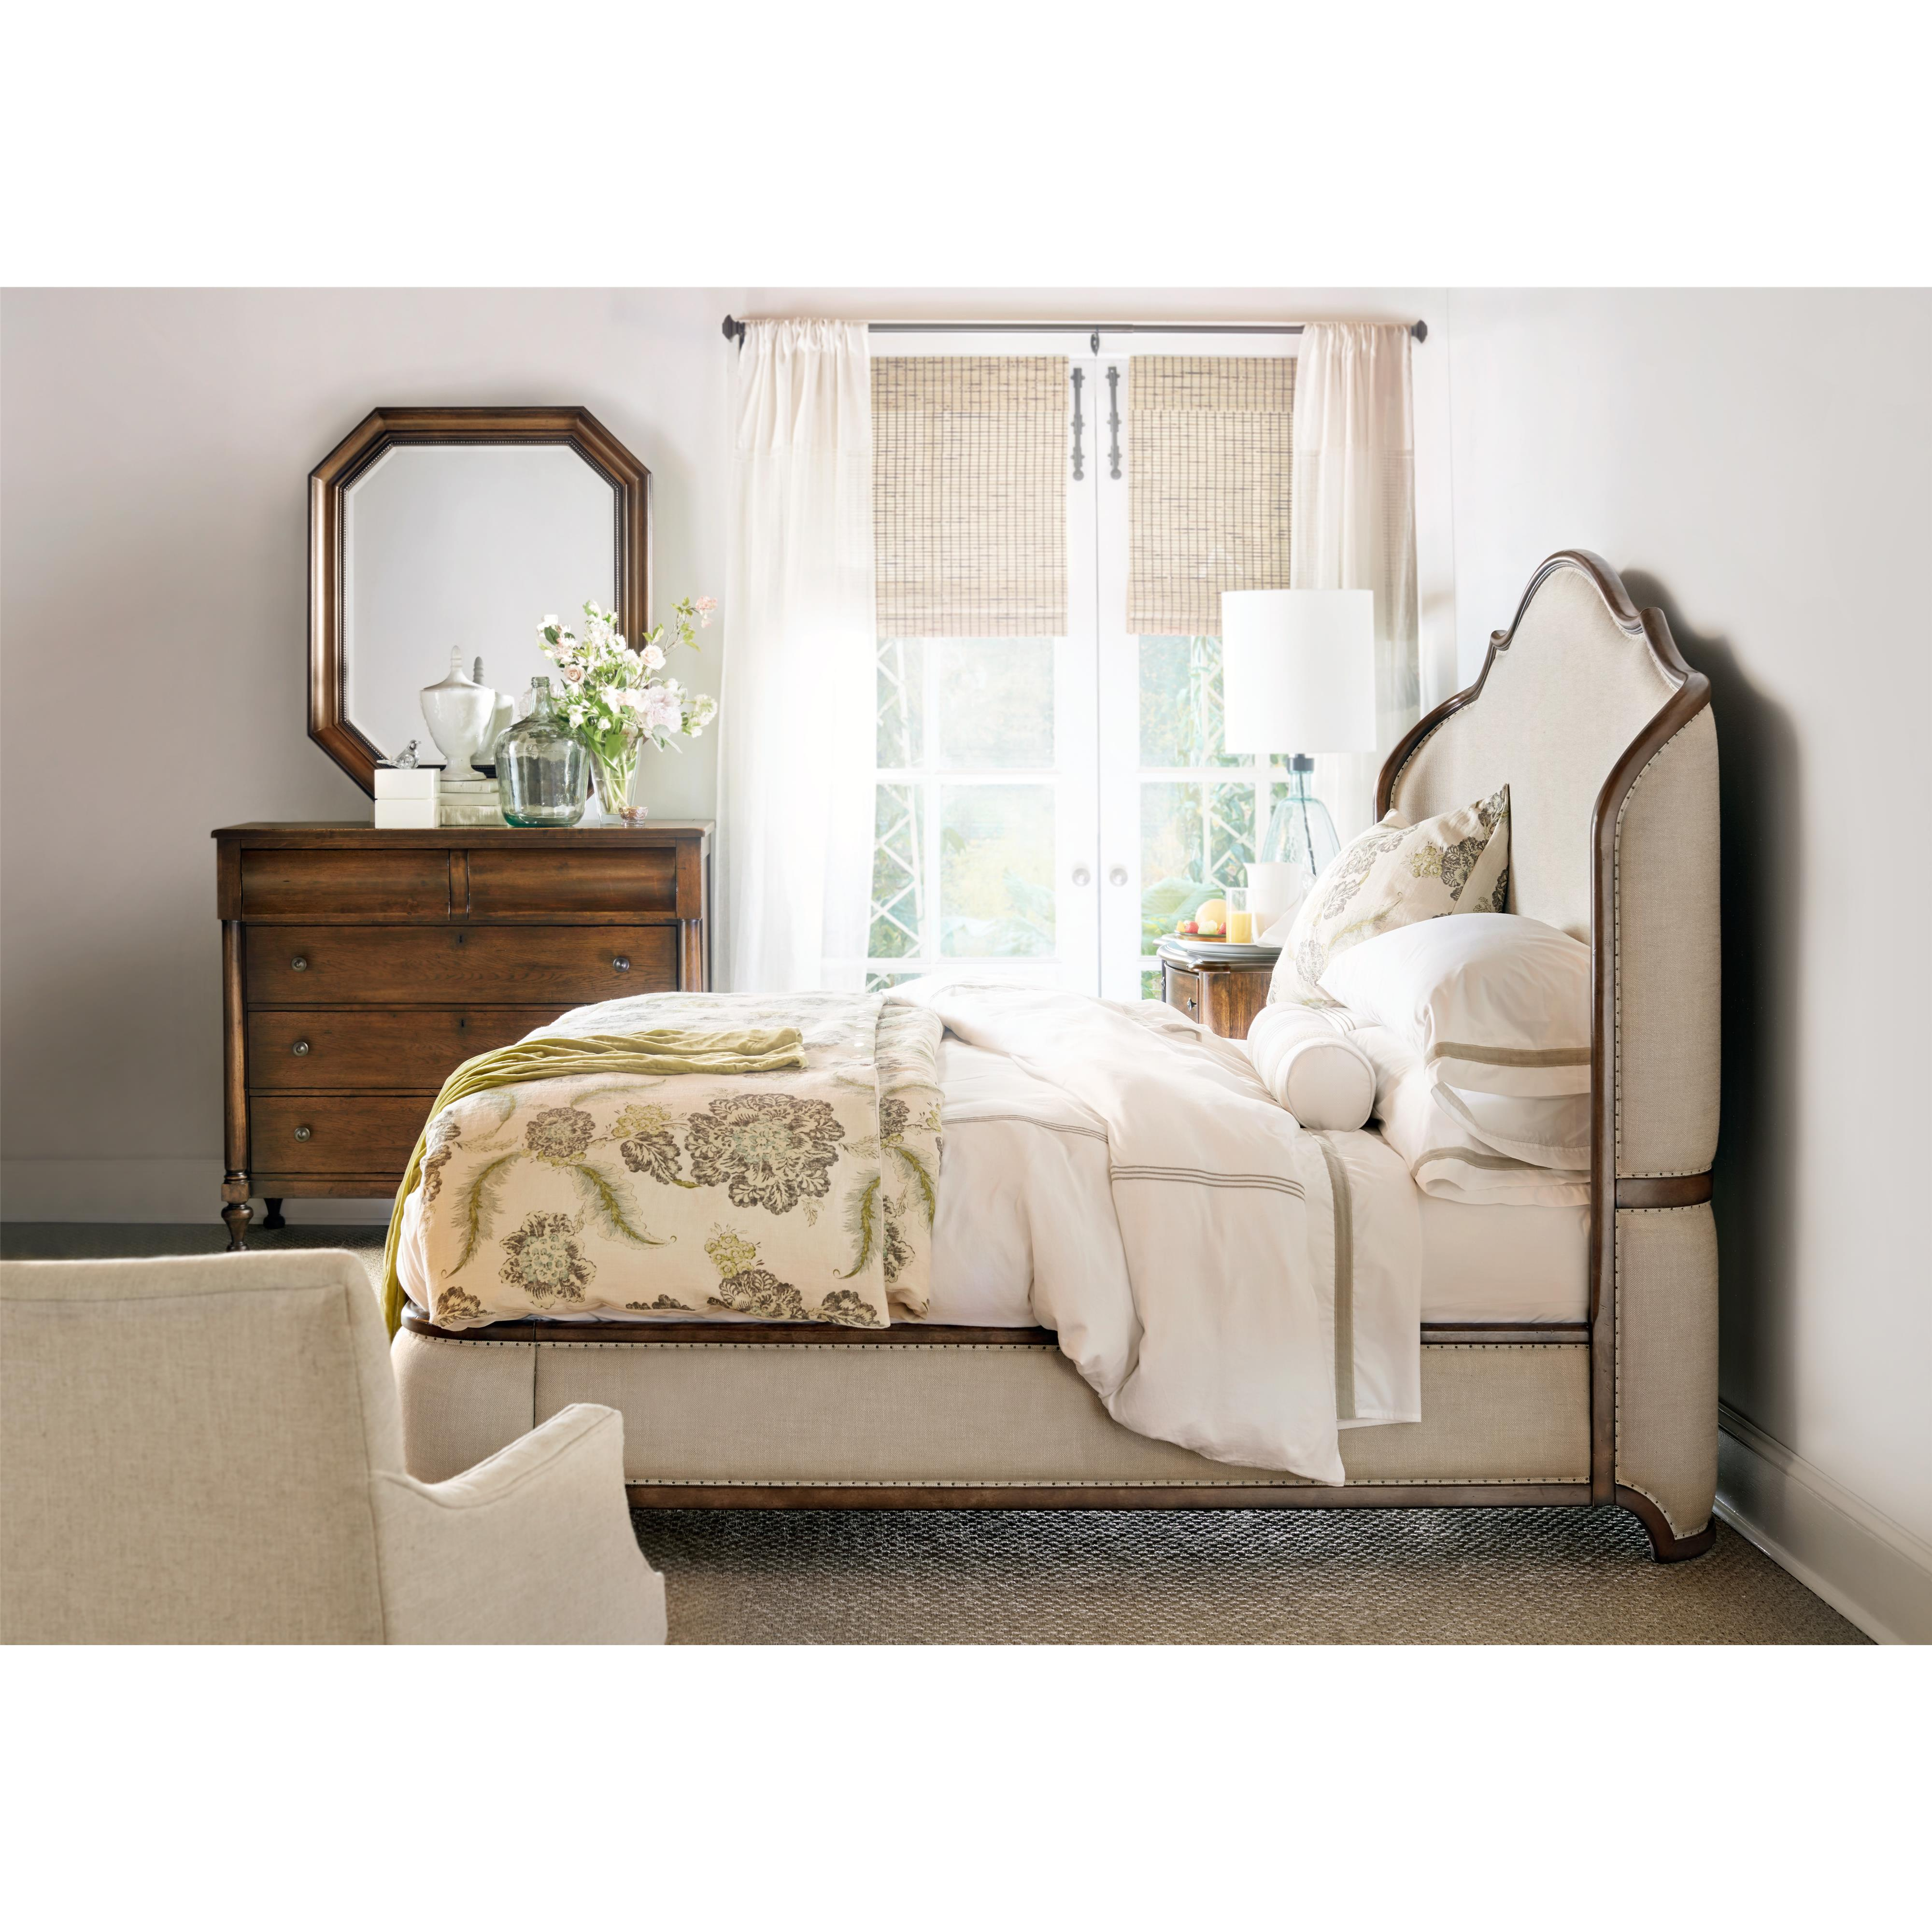 Canopy Style Bed Available For Order In These Wood Colours: Hooker Furniture Archivist Queen Upholstered Platform